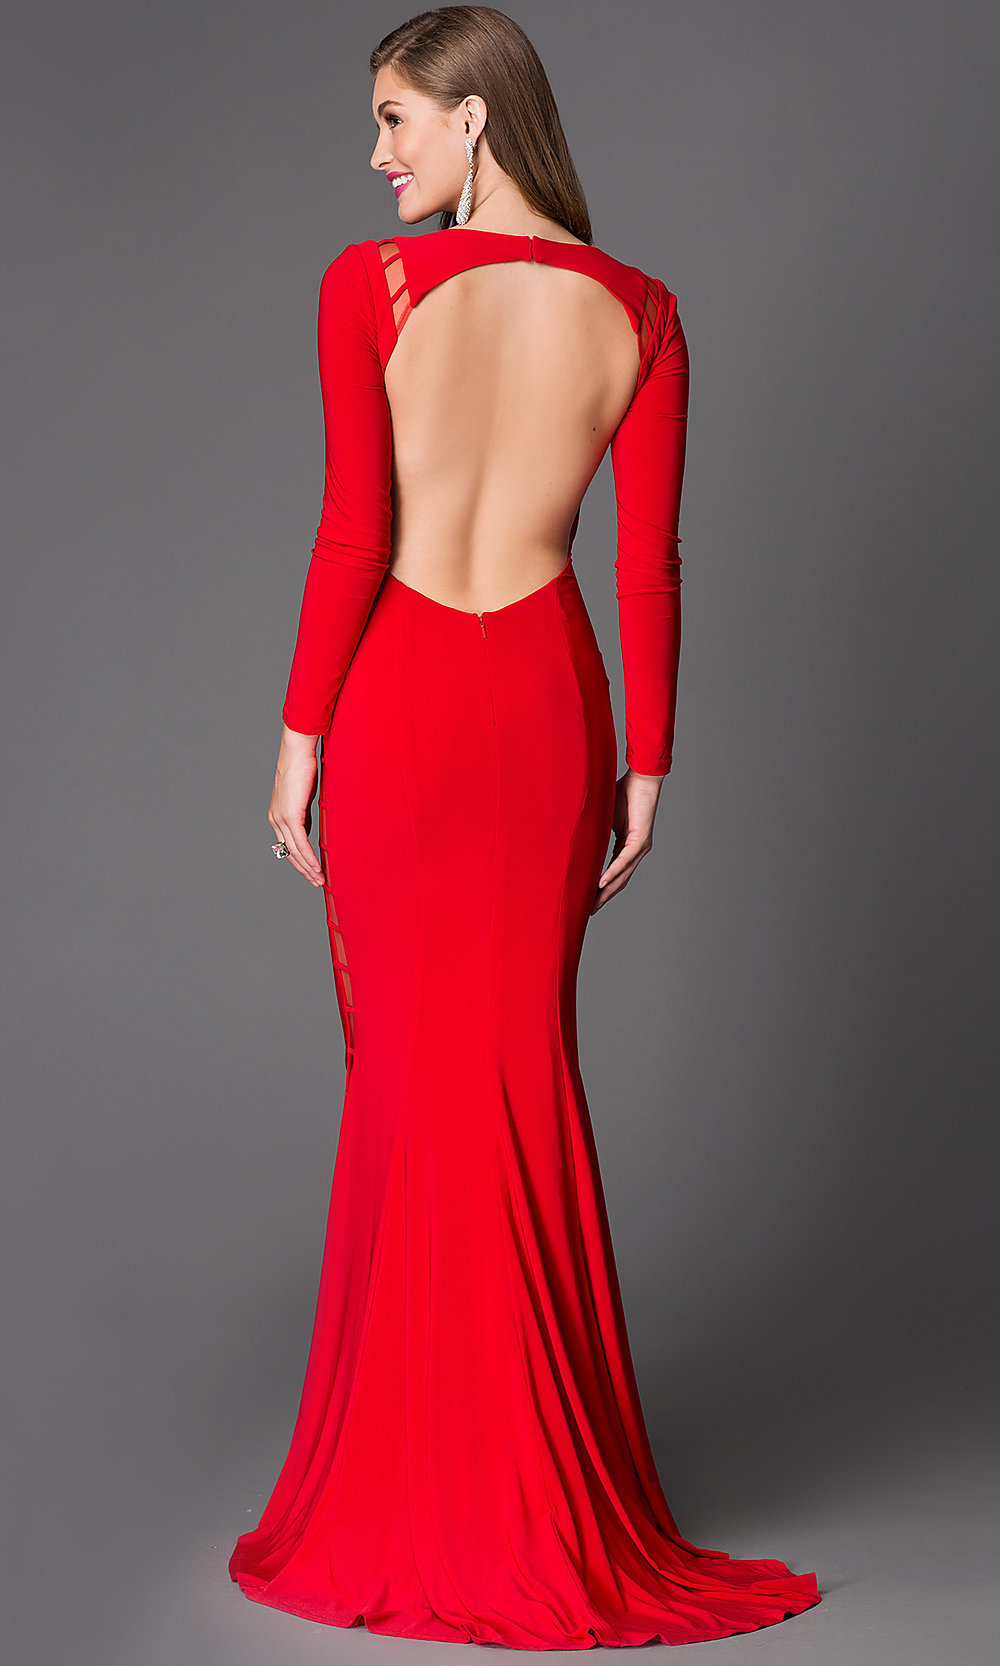 Long Sleeve Backless Evening Dress - PromGirl